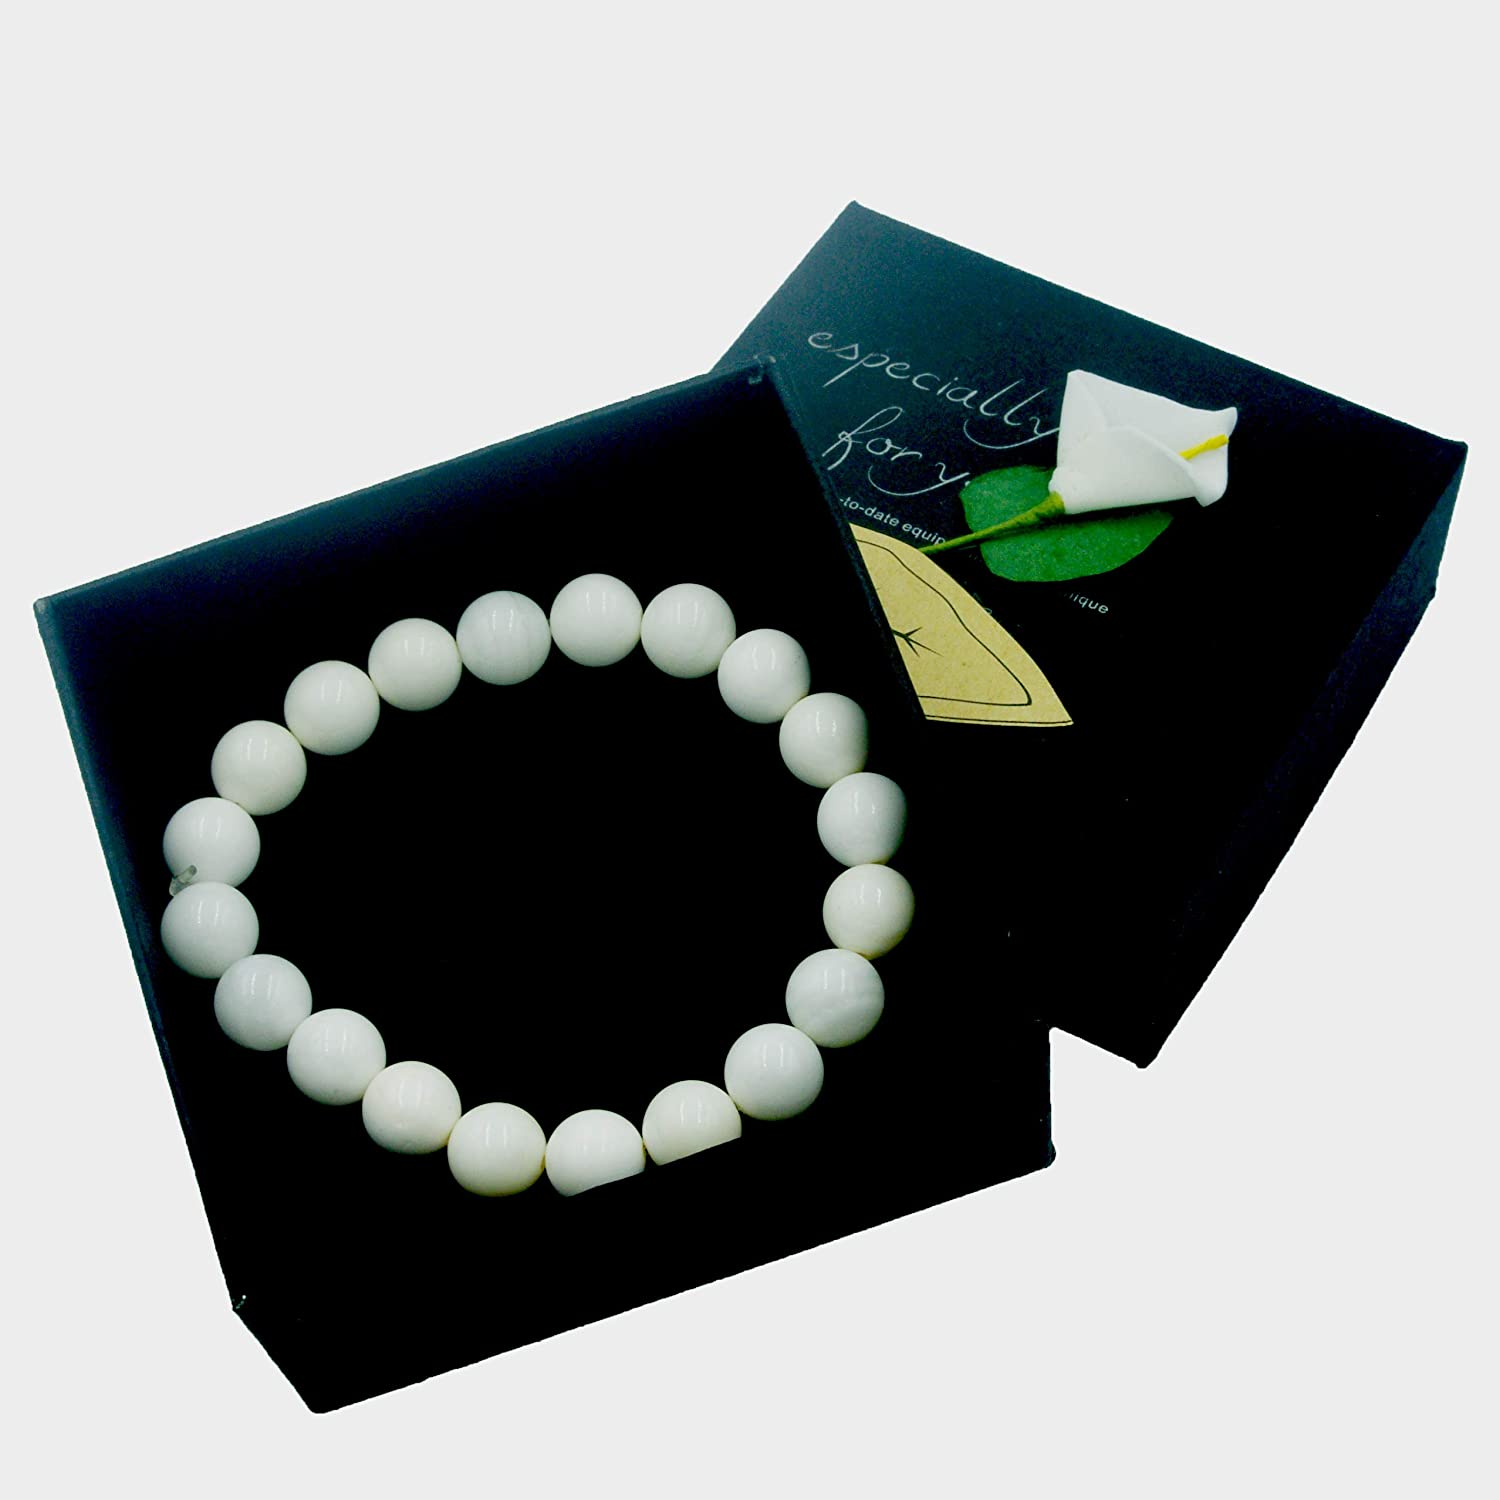 Bleu Bath White Pure Natural Tridacna Shell Beads 8mm Smooth Round Loose Beads Gem Stretch Bracelet Findings Cool in Gift Box Packed Even for Sensitive Skin